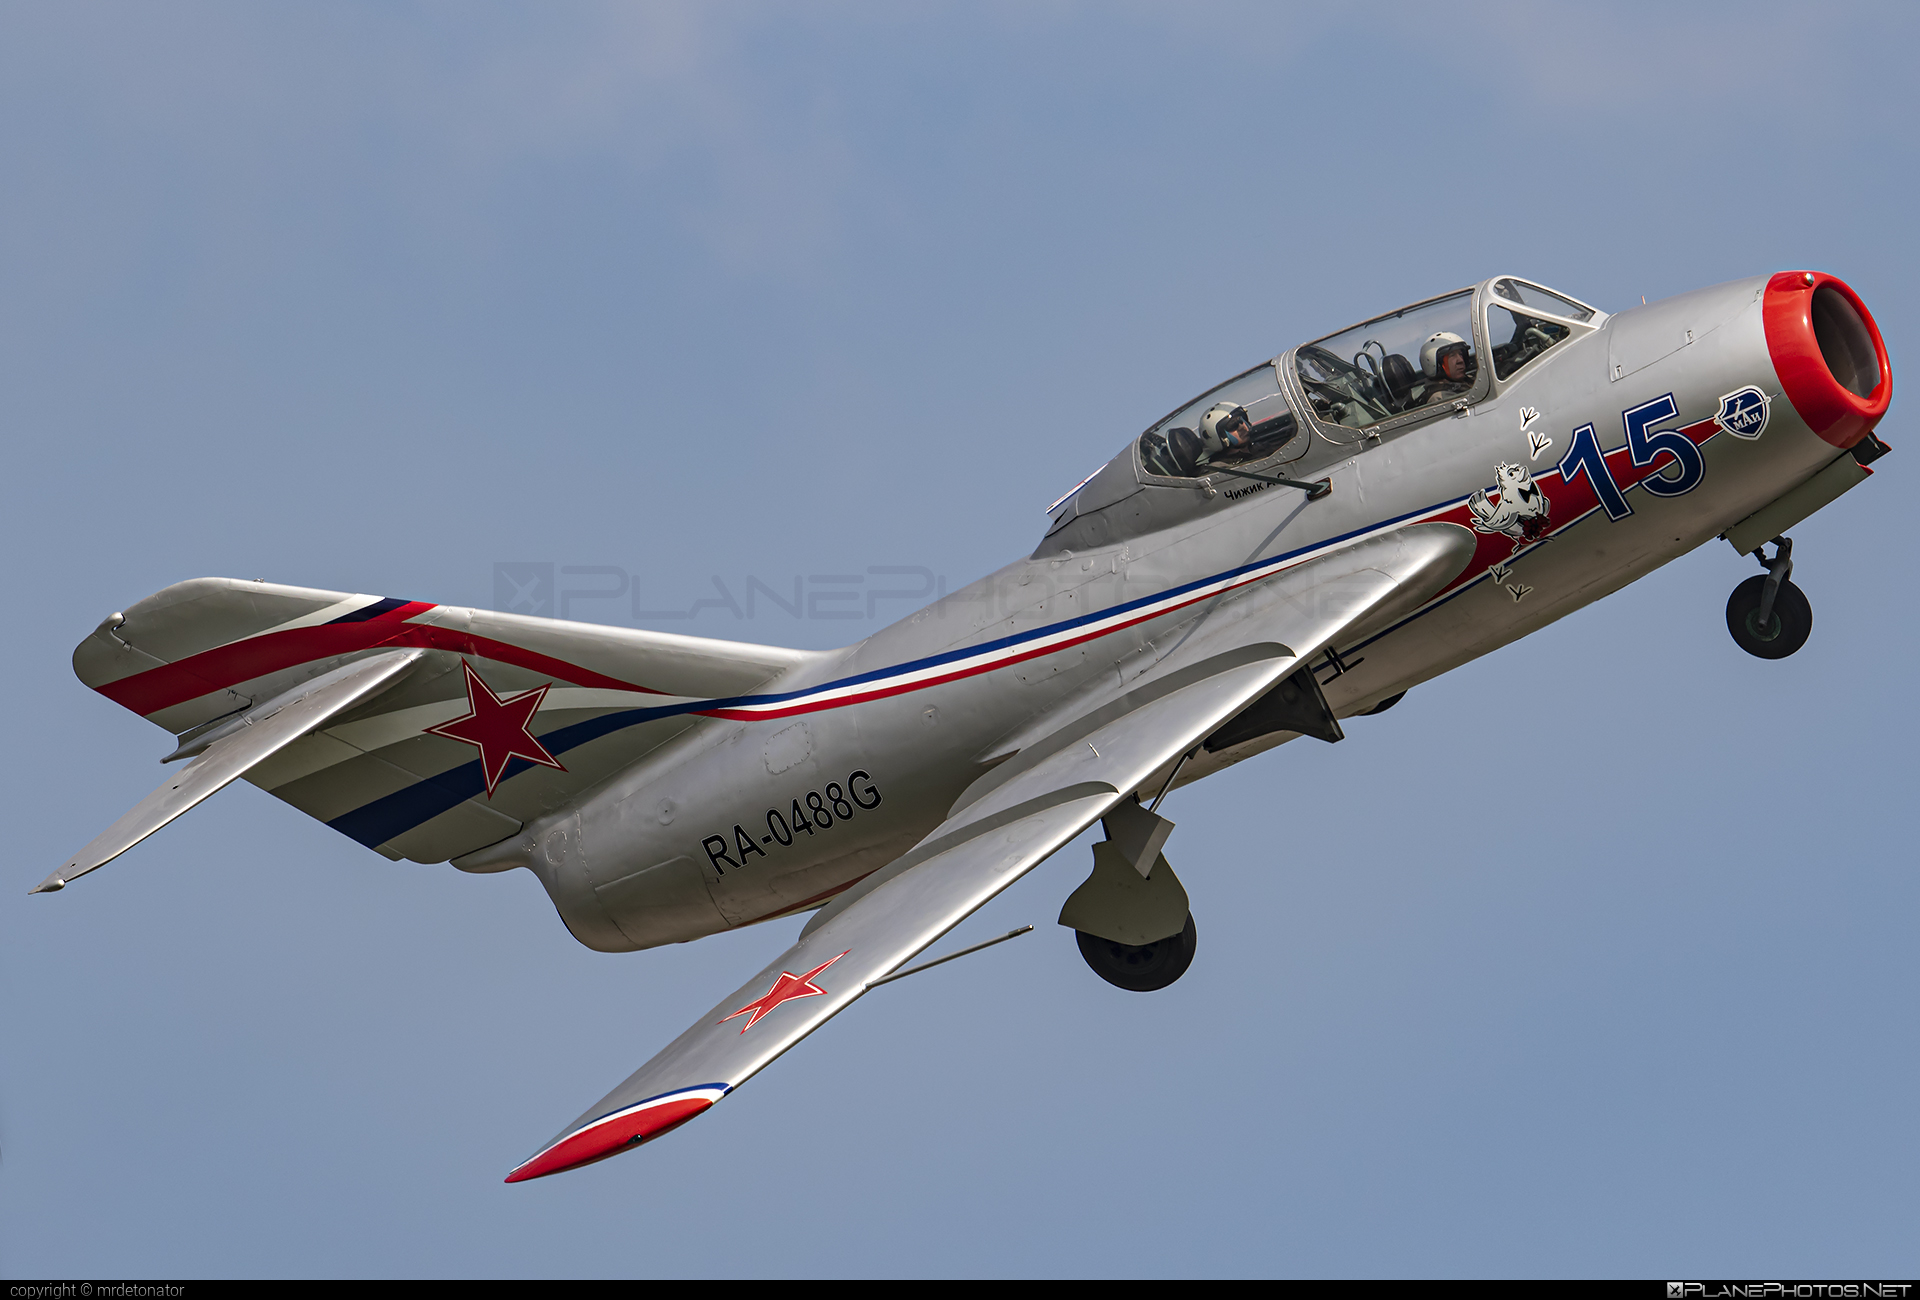 Mikoyan-Gurevich MiG-15UTI - RA-0488G operated by Private operator #maks2019 #mig #mig15 #mig15uti #mikoyangurevich